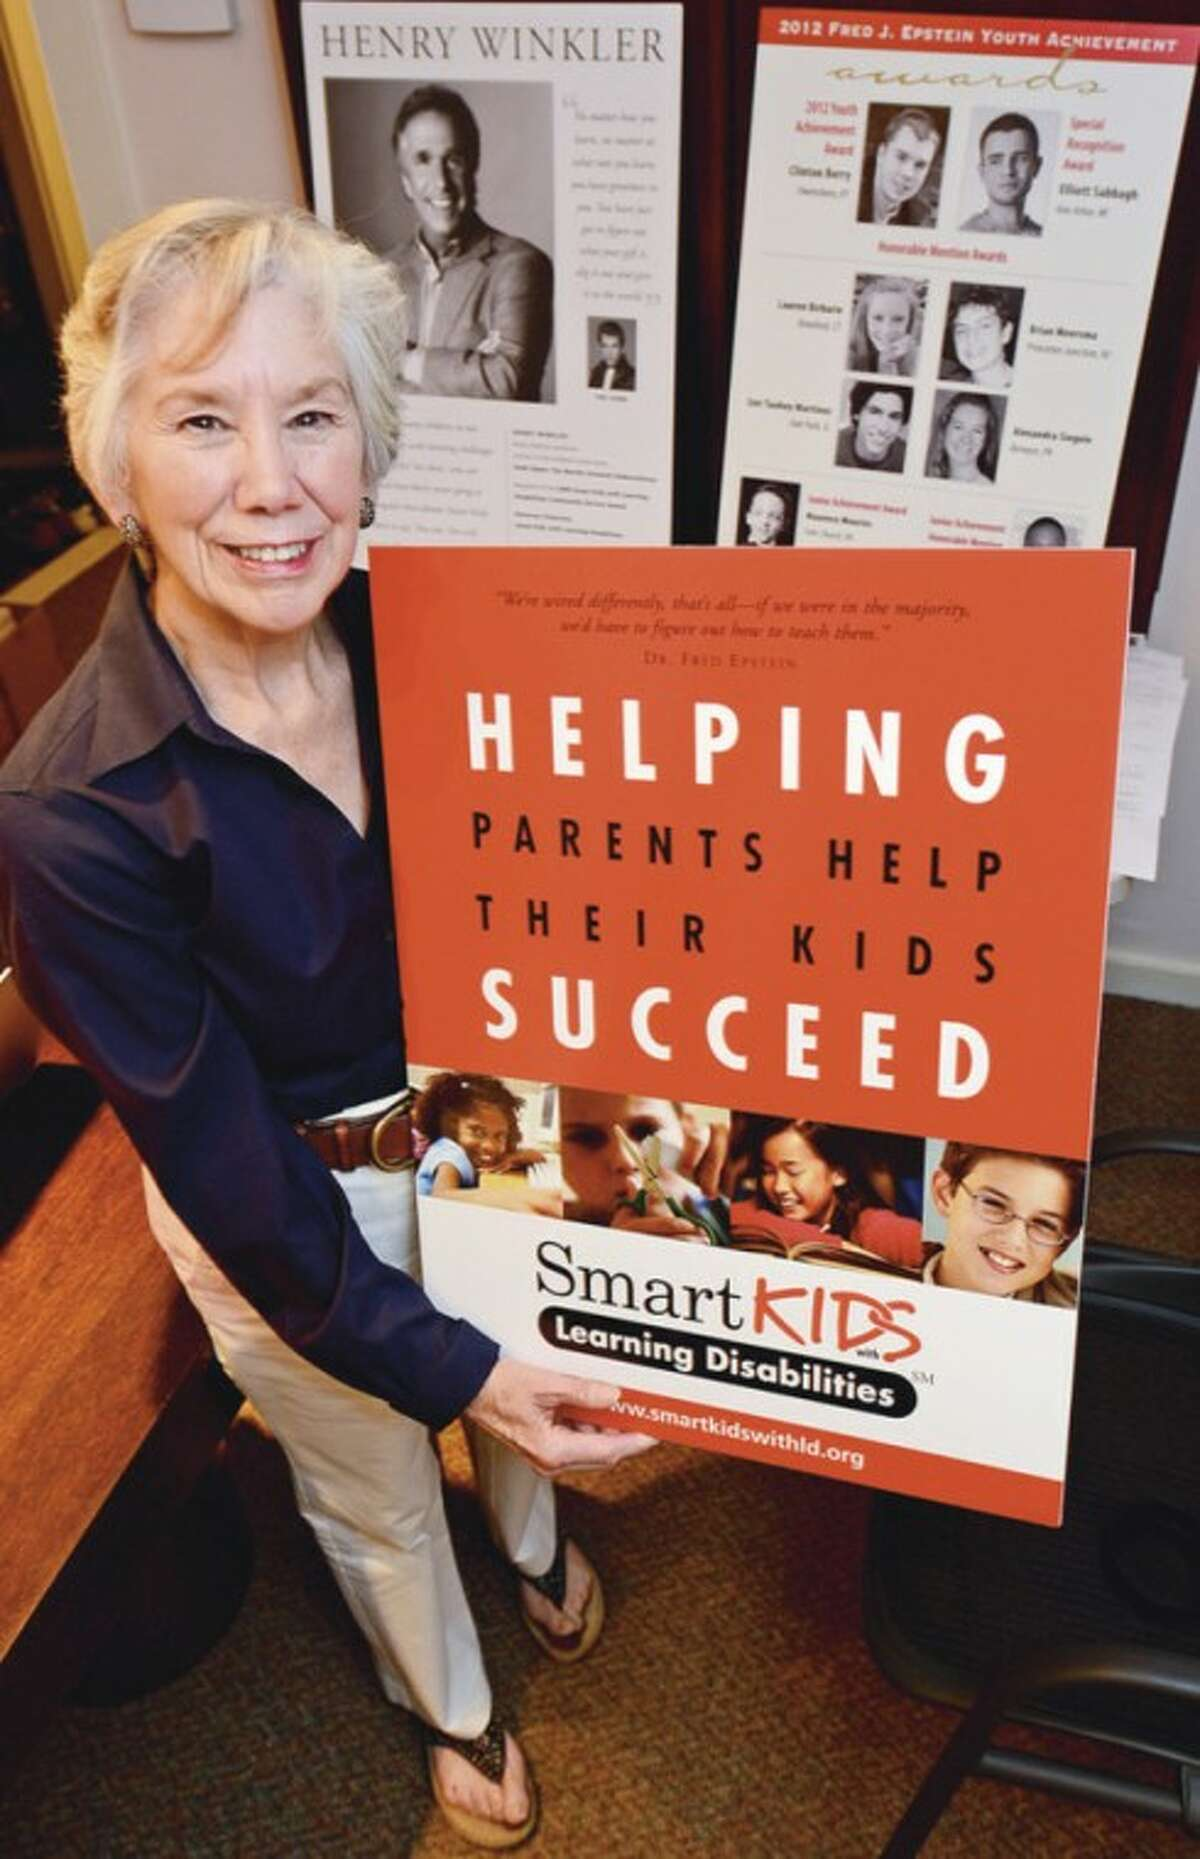 Hour photo / Erik Trautmann Jane Ross founded Smart Kids, a nonprofit organization in Westport dedicated to helping children with learning disabilities succeed.